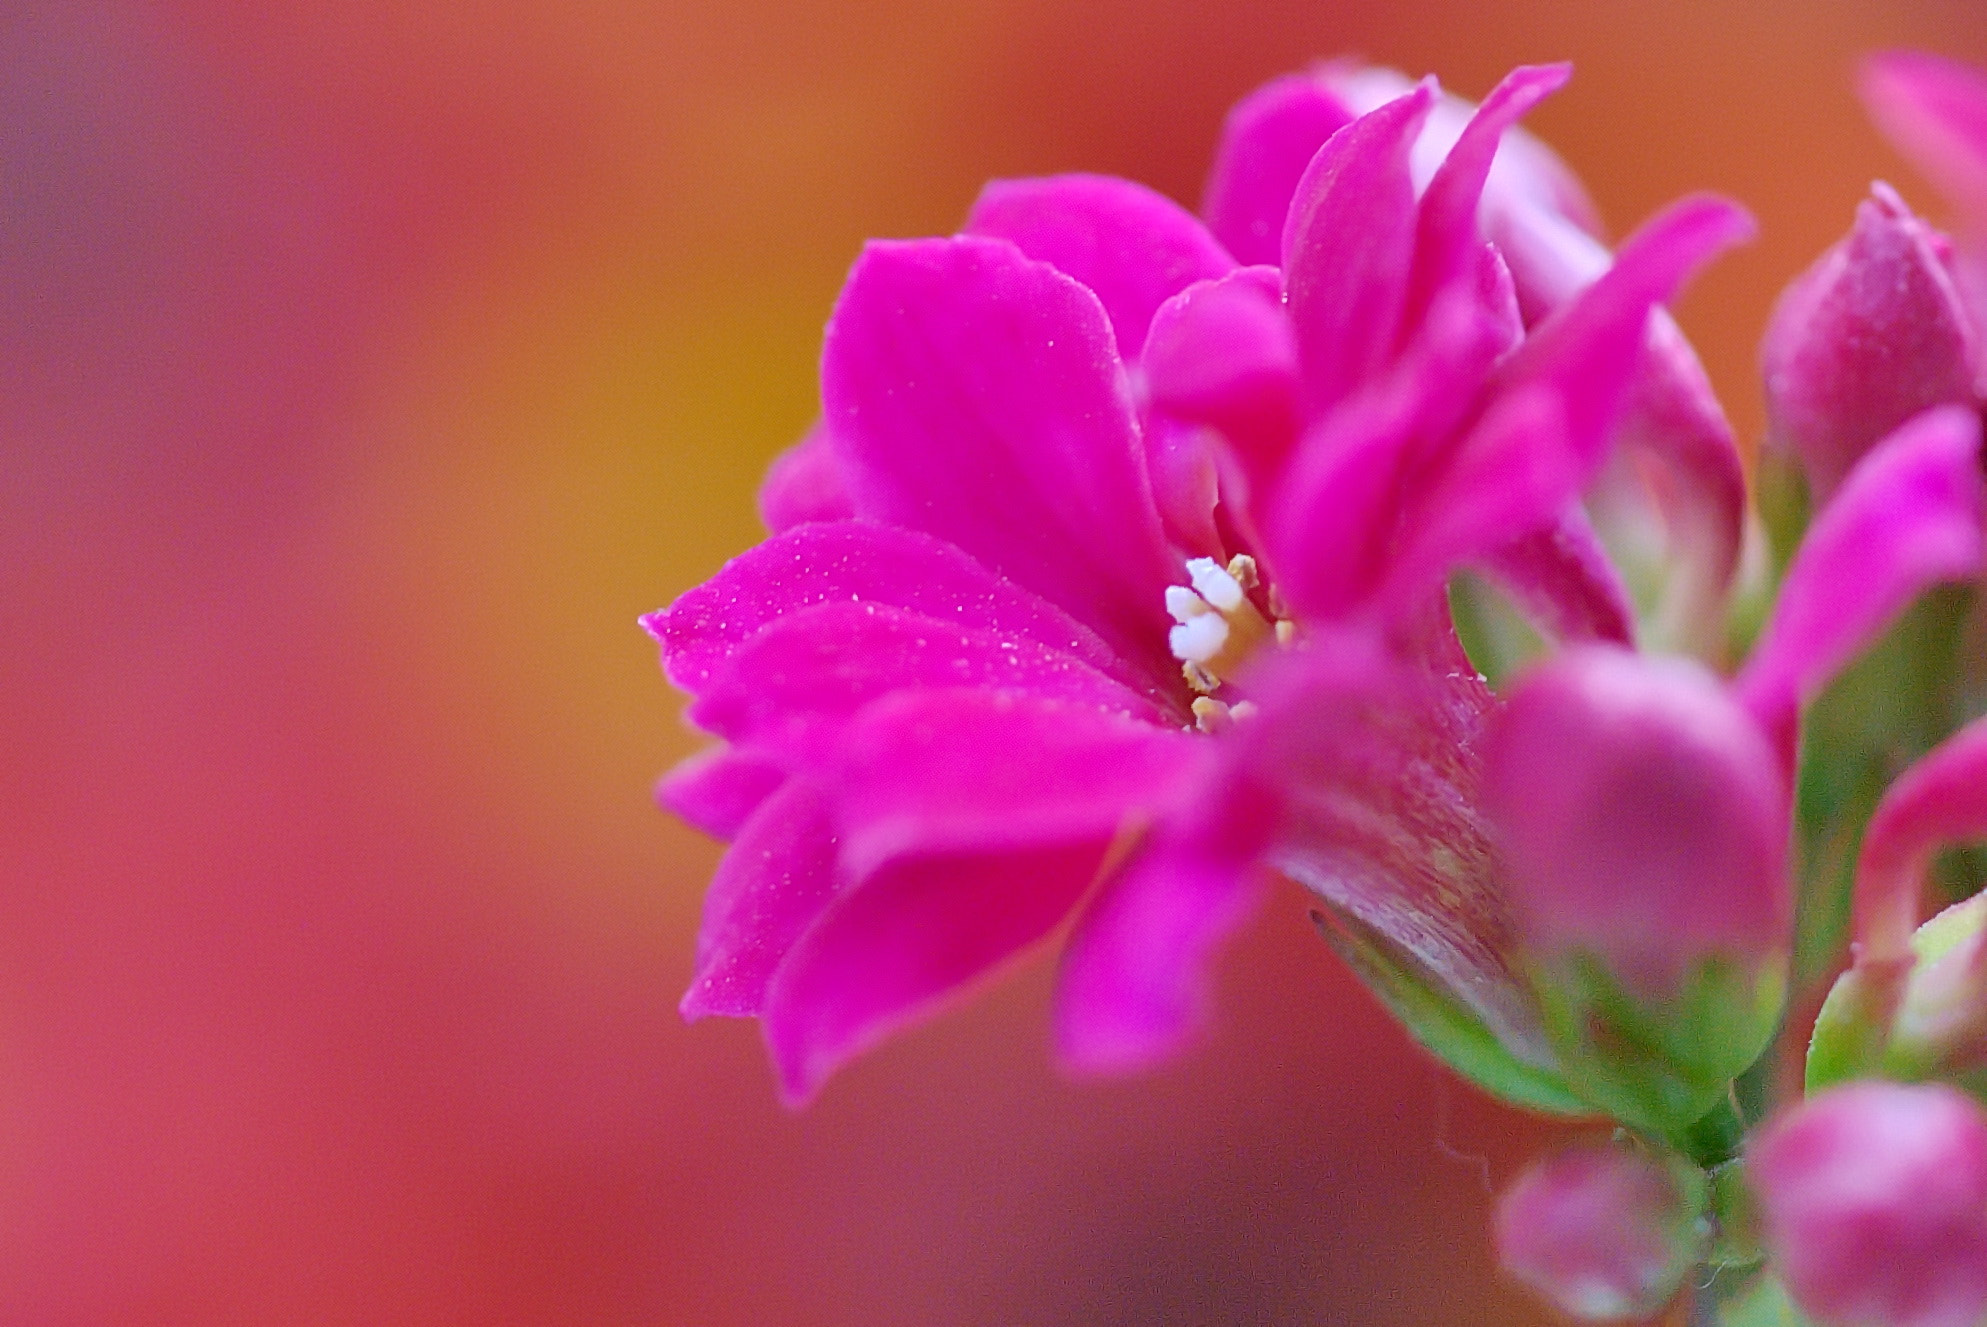 Photograph flower by sgmillionxu2000 on 500px